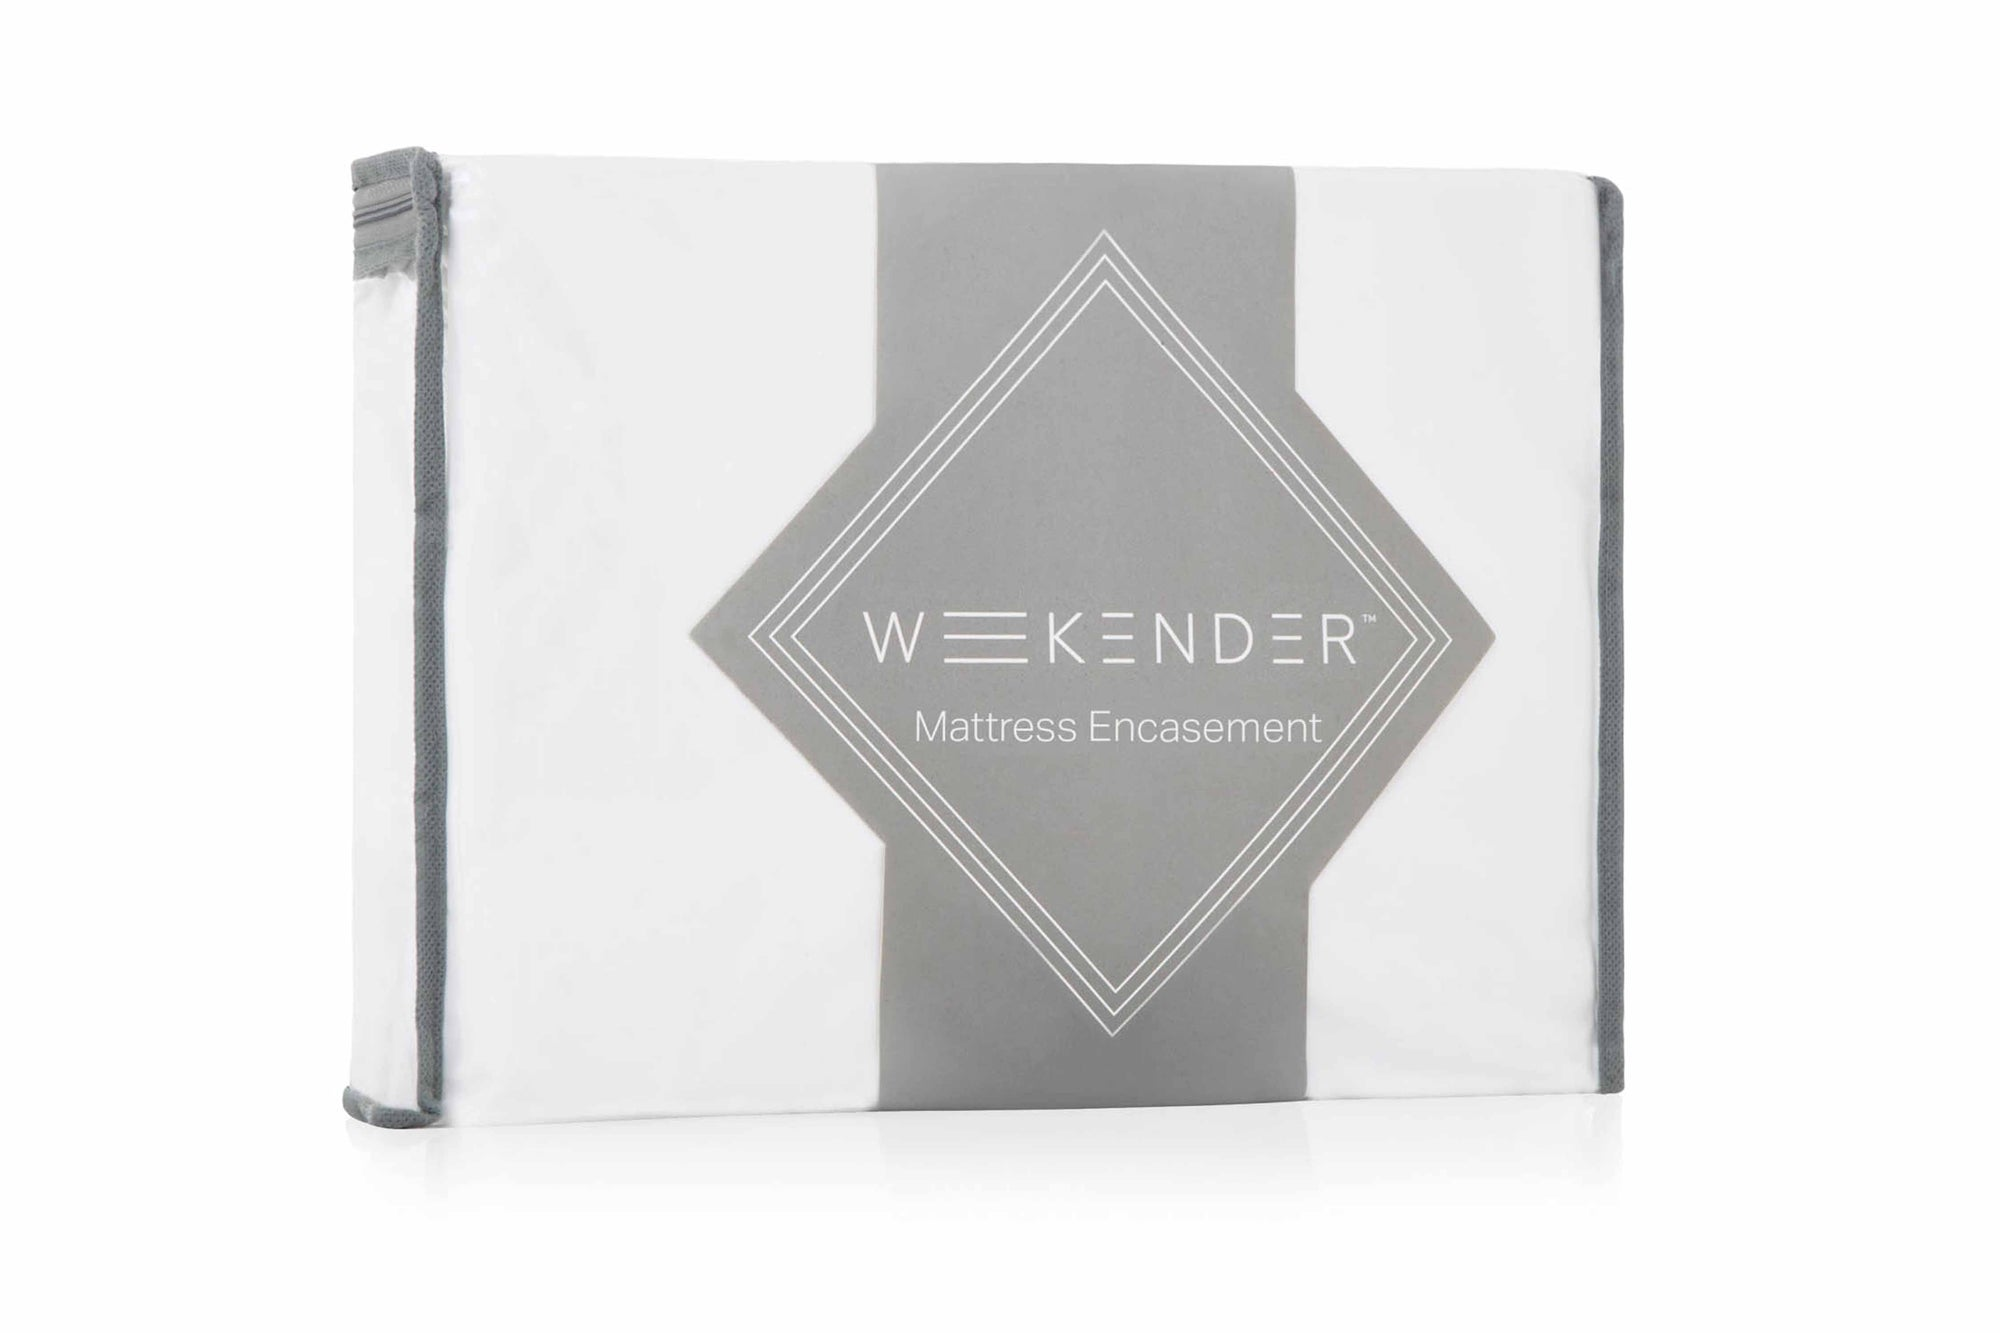 WEEKENDER ENCASEMENT MATTRESS PROTECTOR